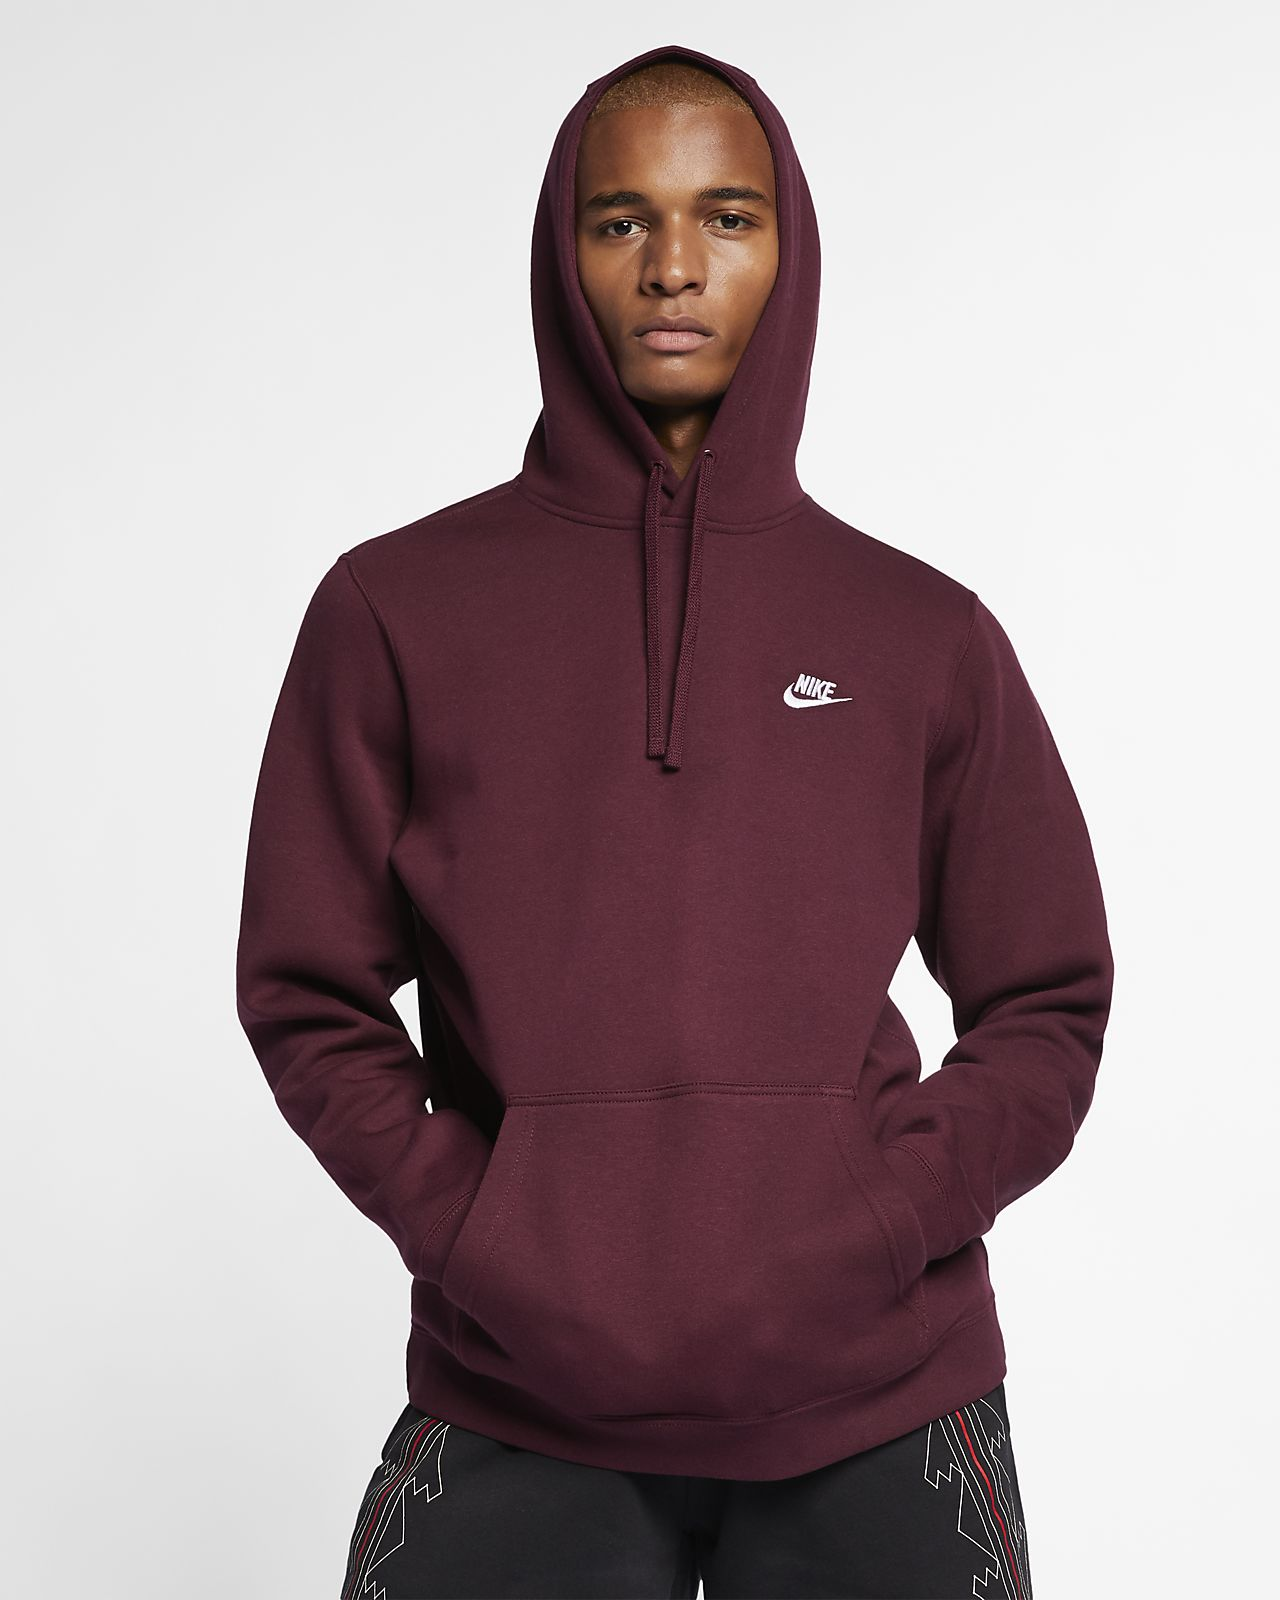 À Fleece Pour Sweat Xuxbxfq Nike Capuche Homme Club Be Sportswear qqHZn6tgR